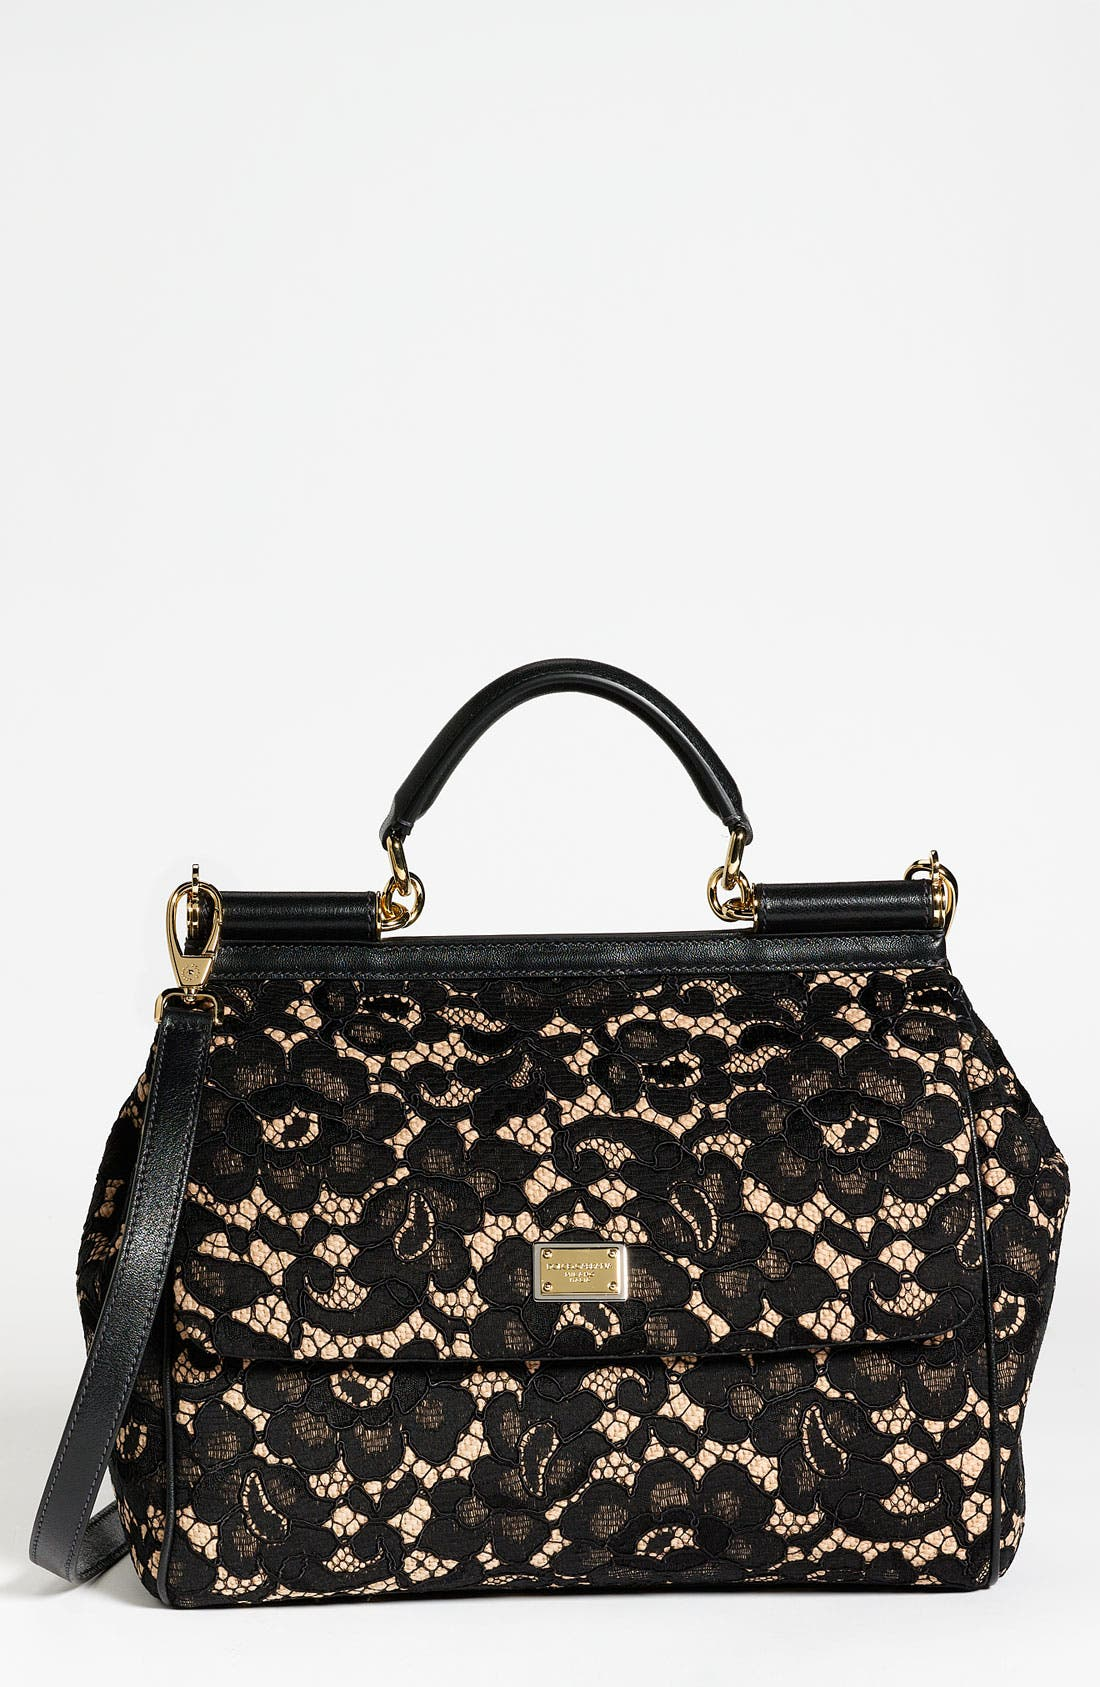 Main Image - Dolce&Gabbana 'Miss Sicily' Leather & Lace Satchel